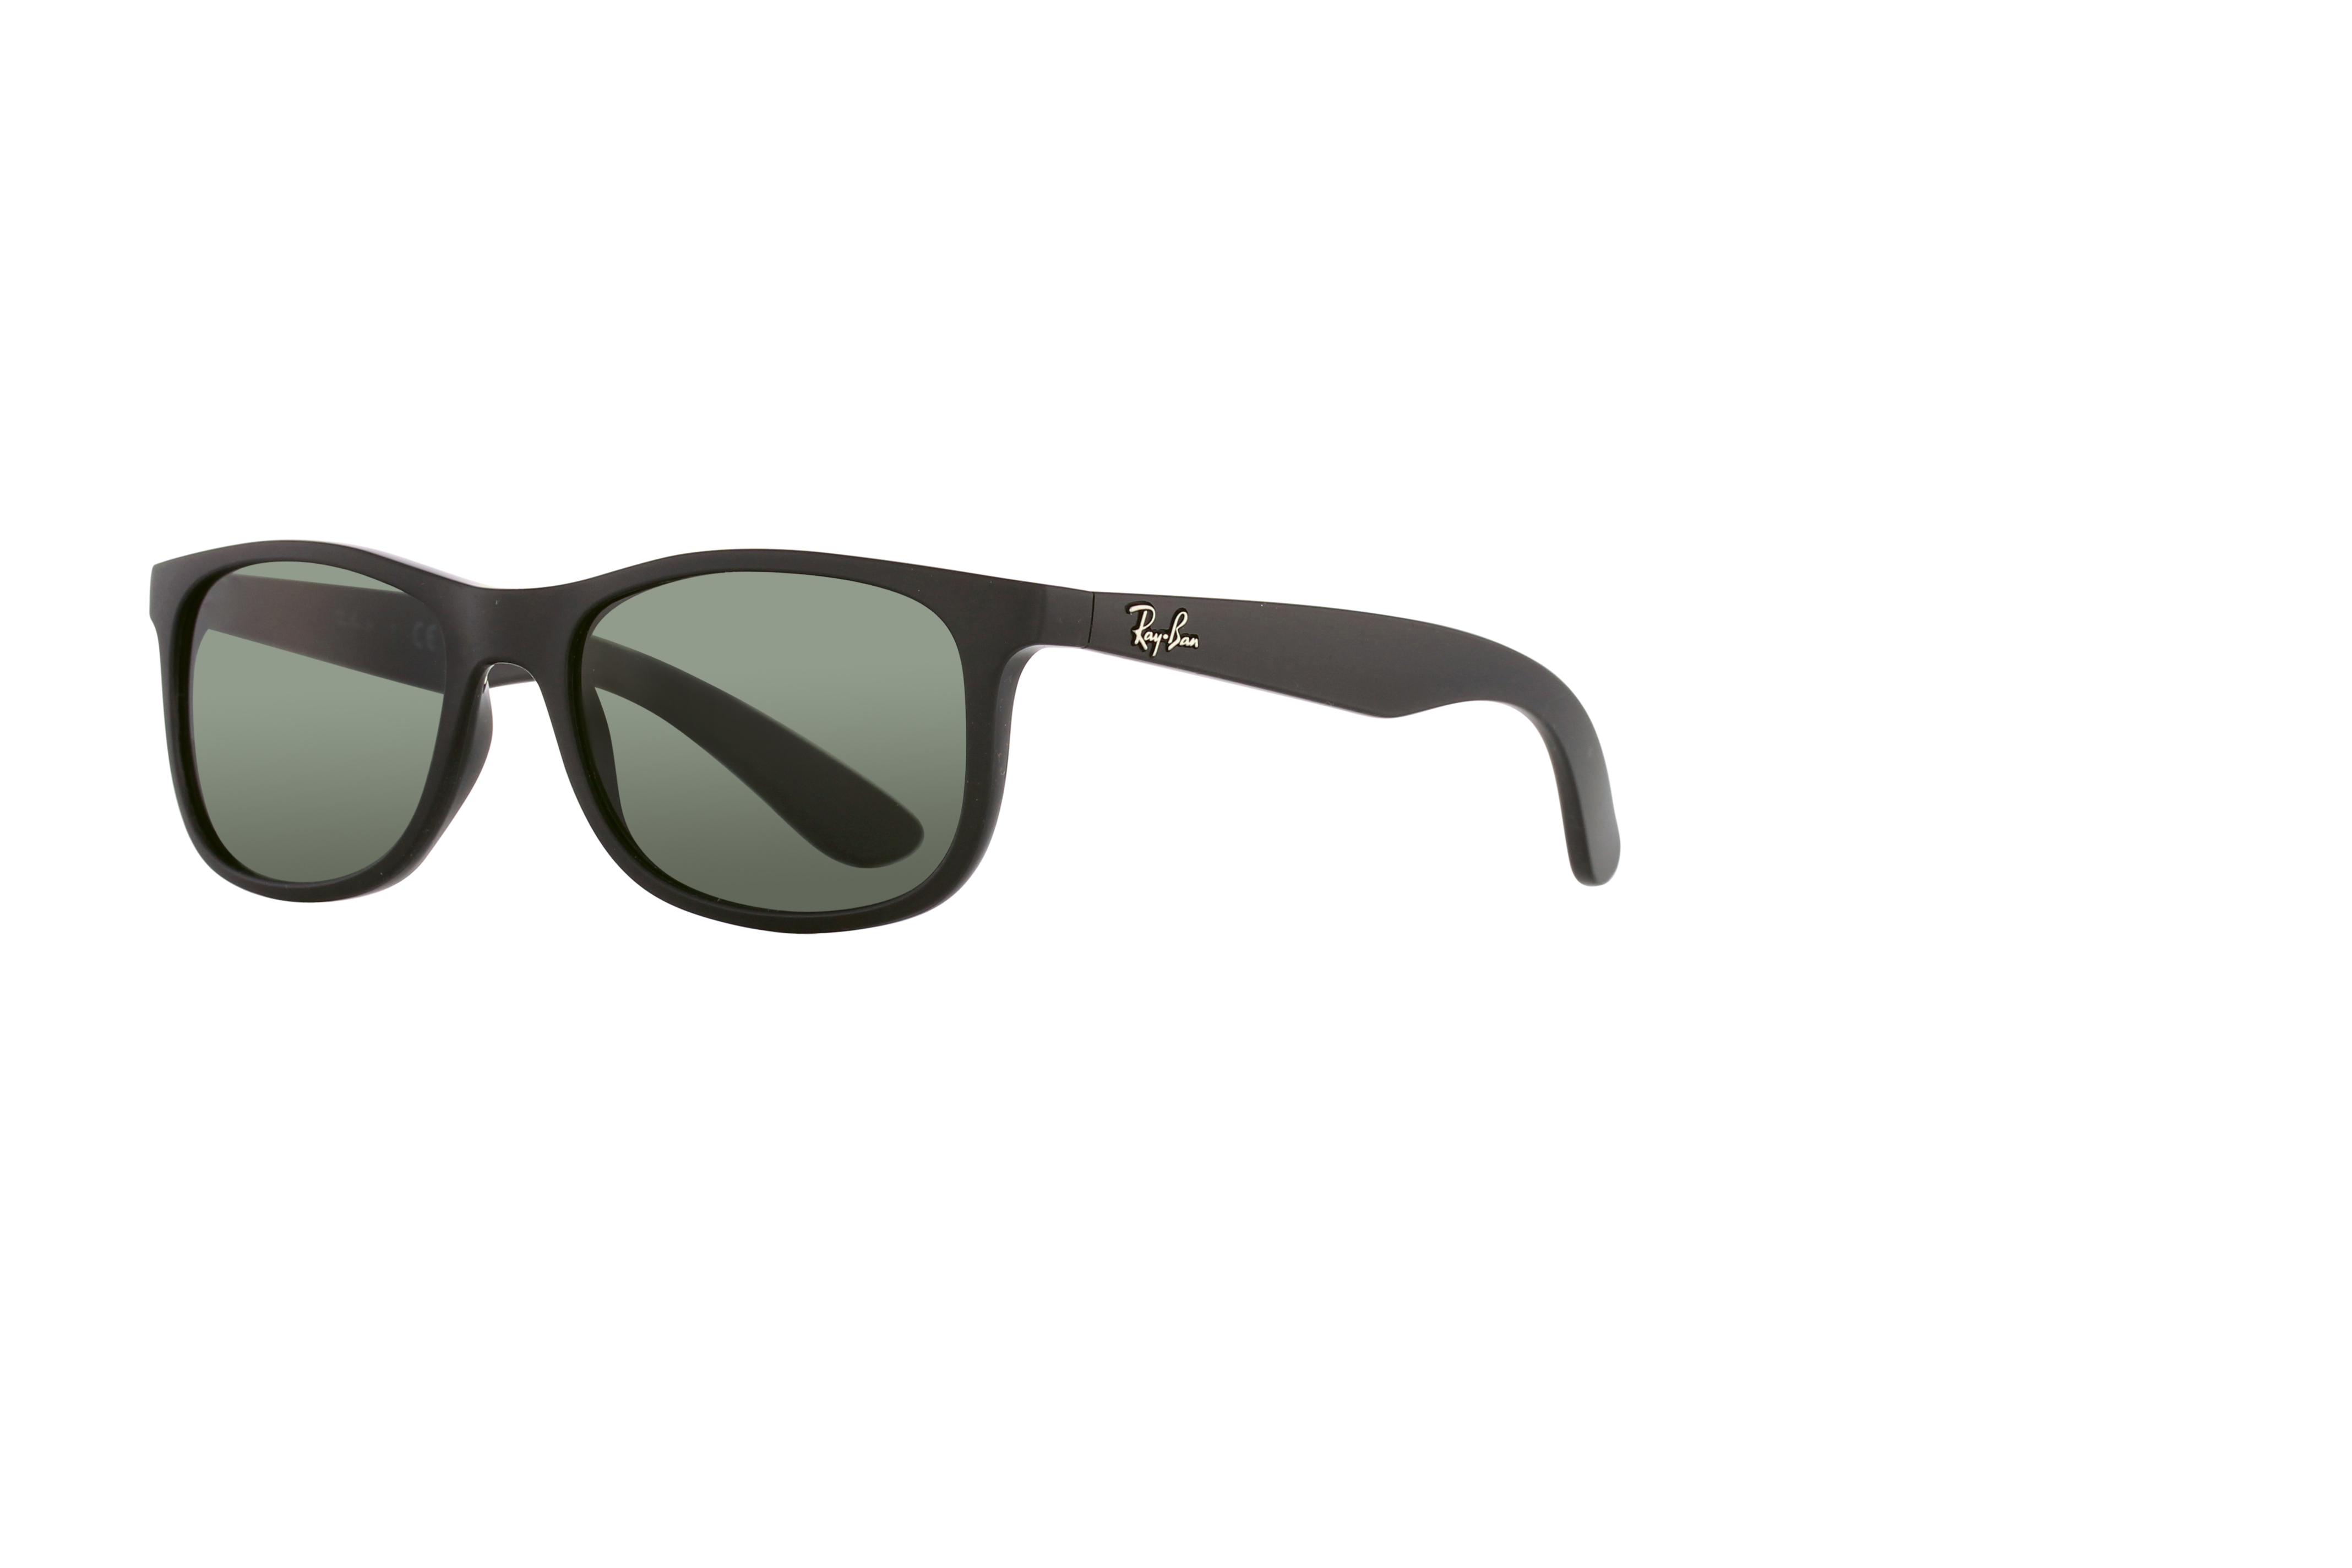 Ray-Ban Youth RJ9062S-S-701371-48-16-125